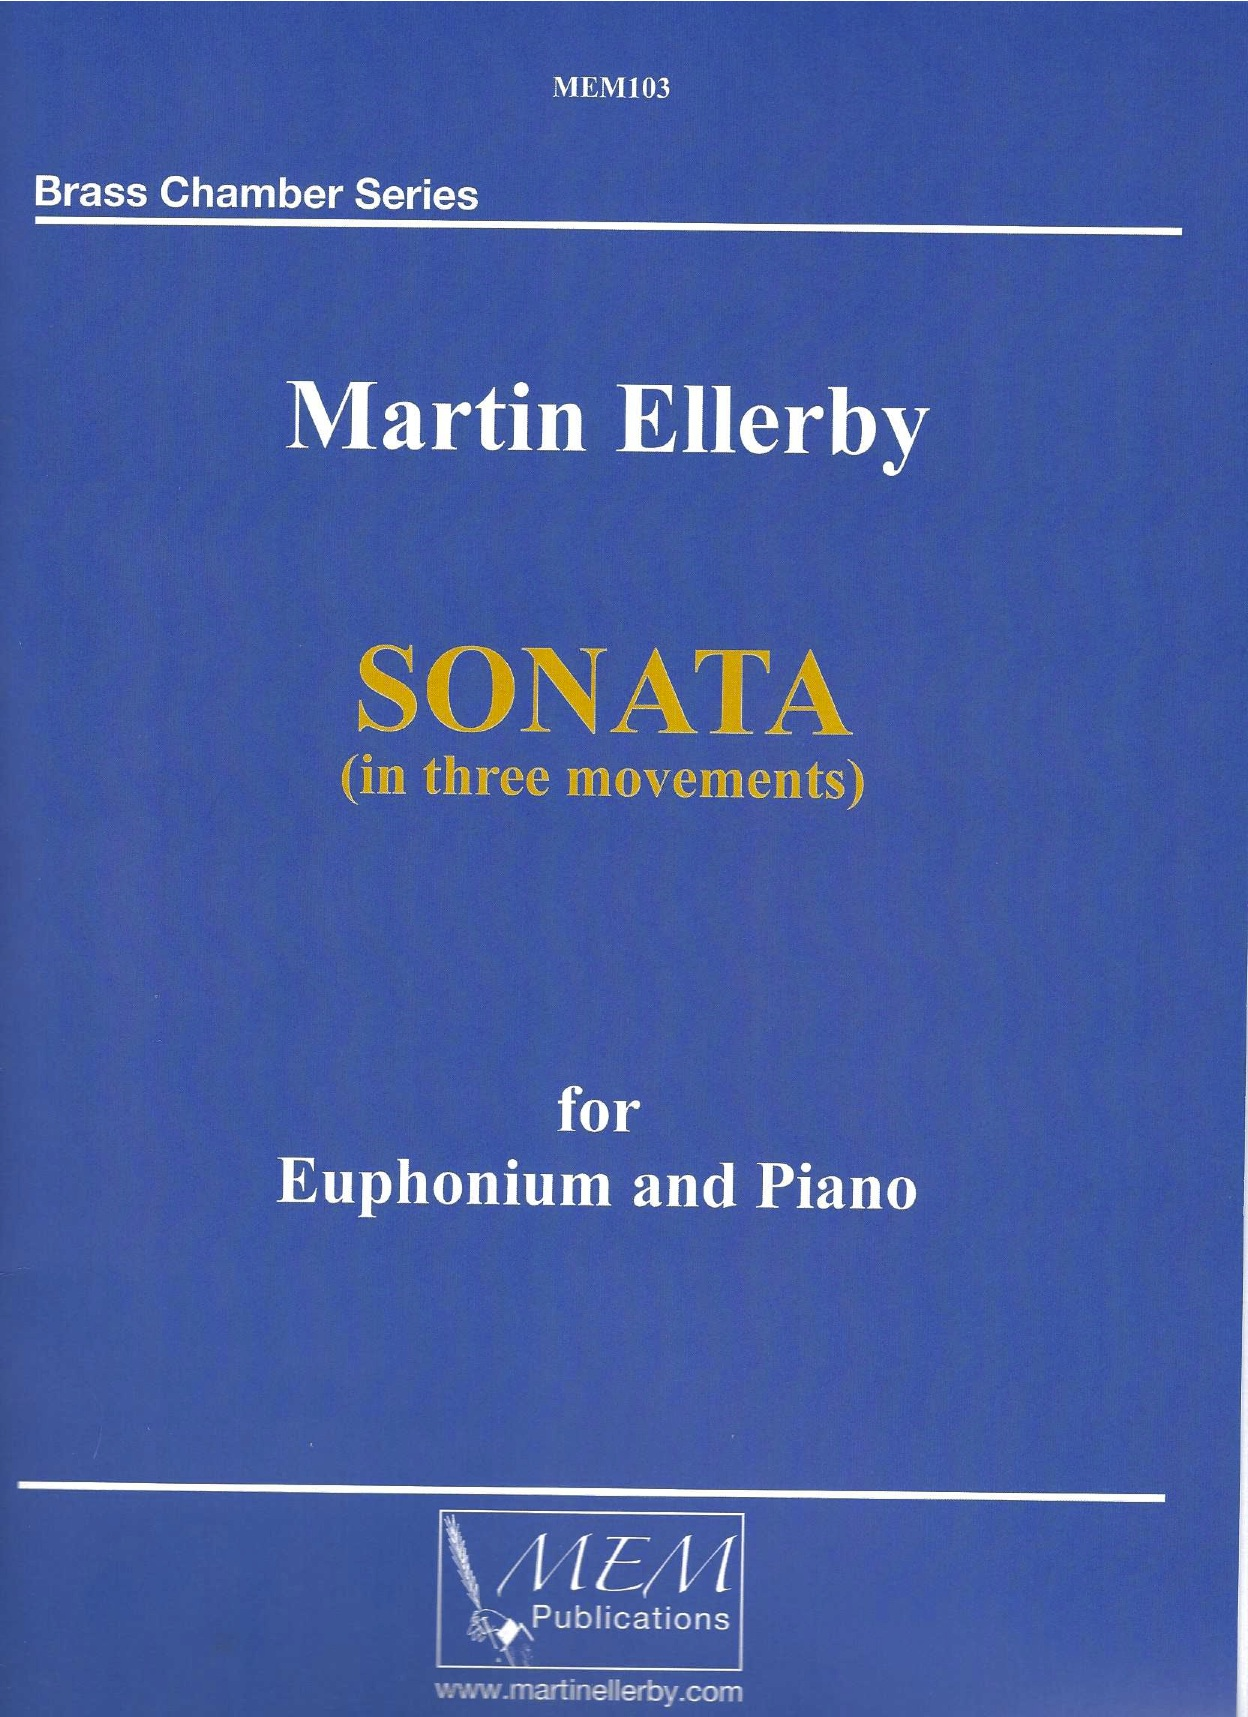 Sonata for Euphonium and Piano - Martin Ellerby